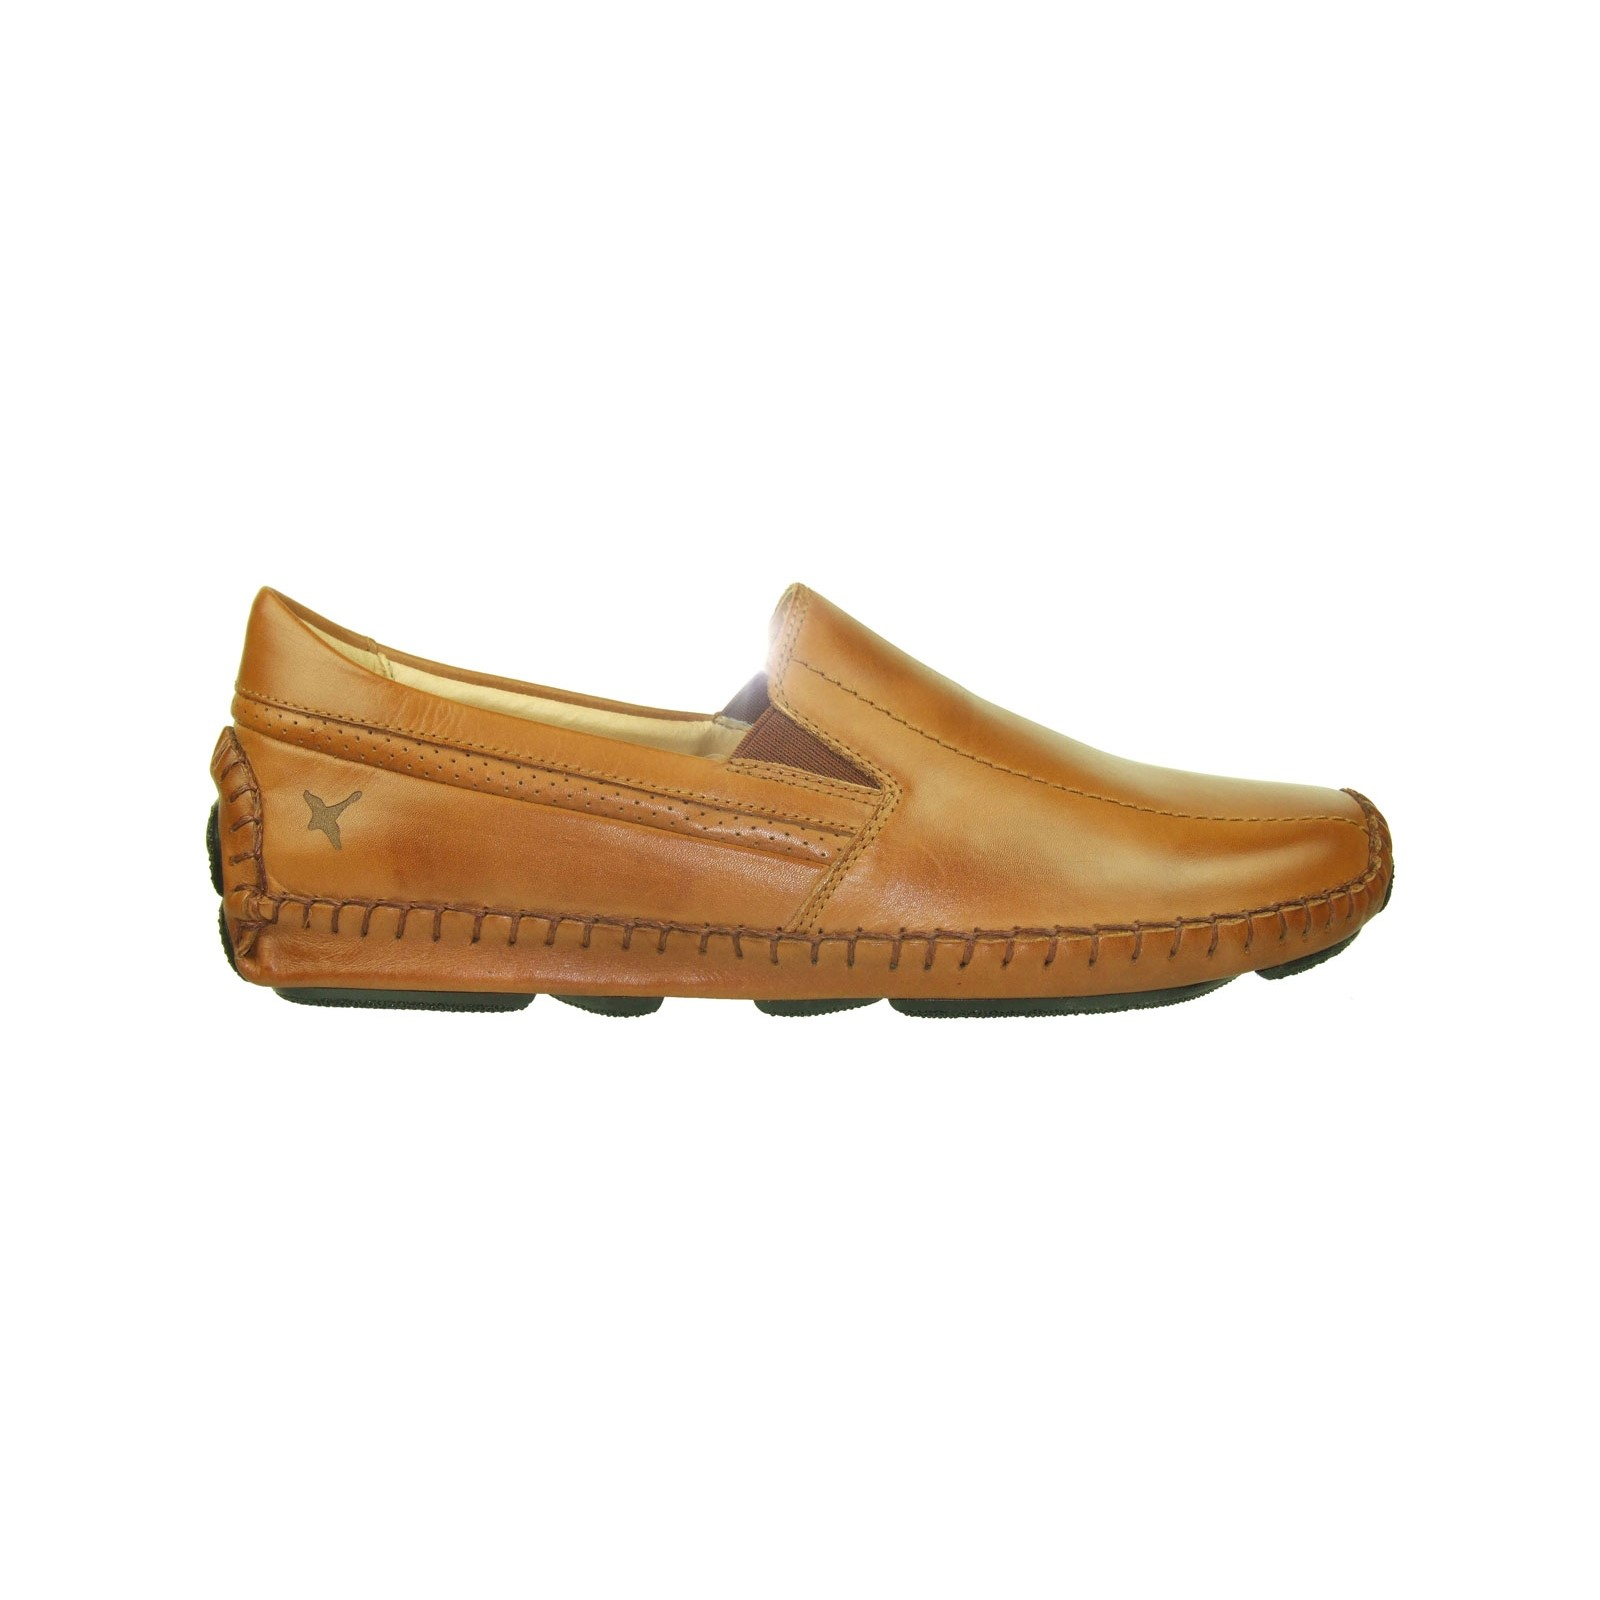 Men's Pikolinos, Jerez Slip-on Shoe